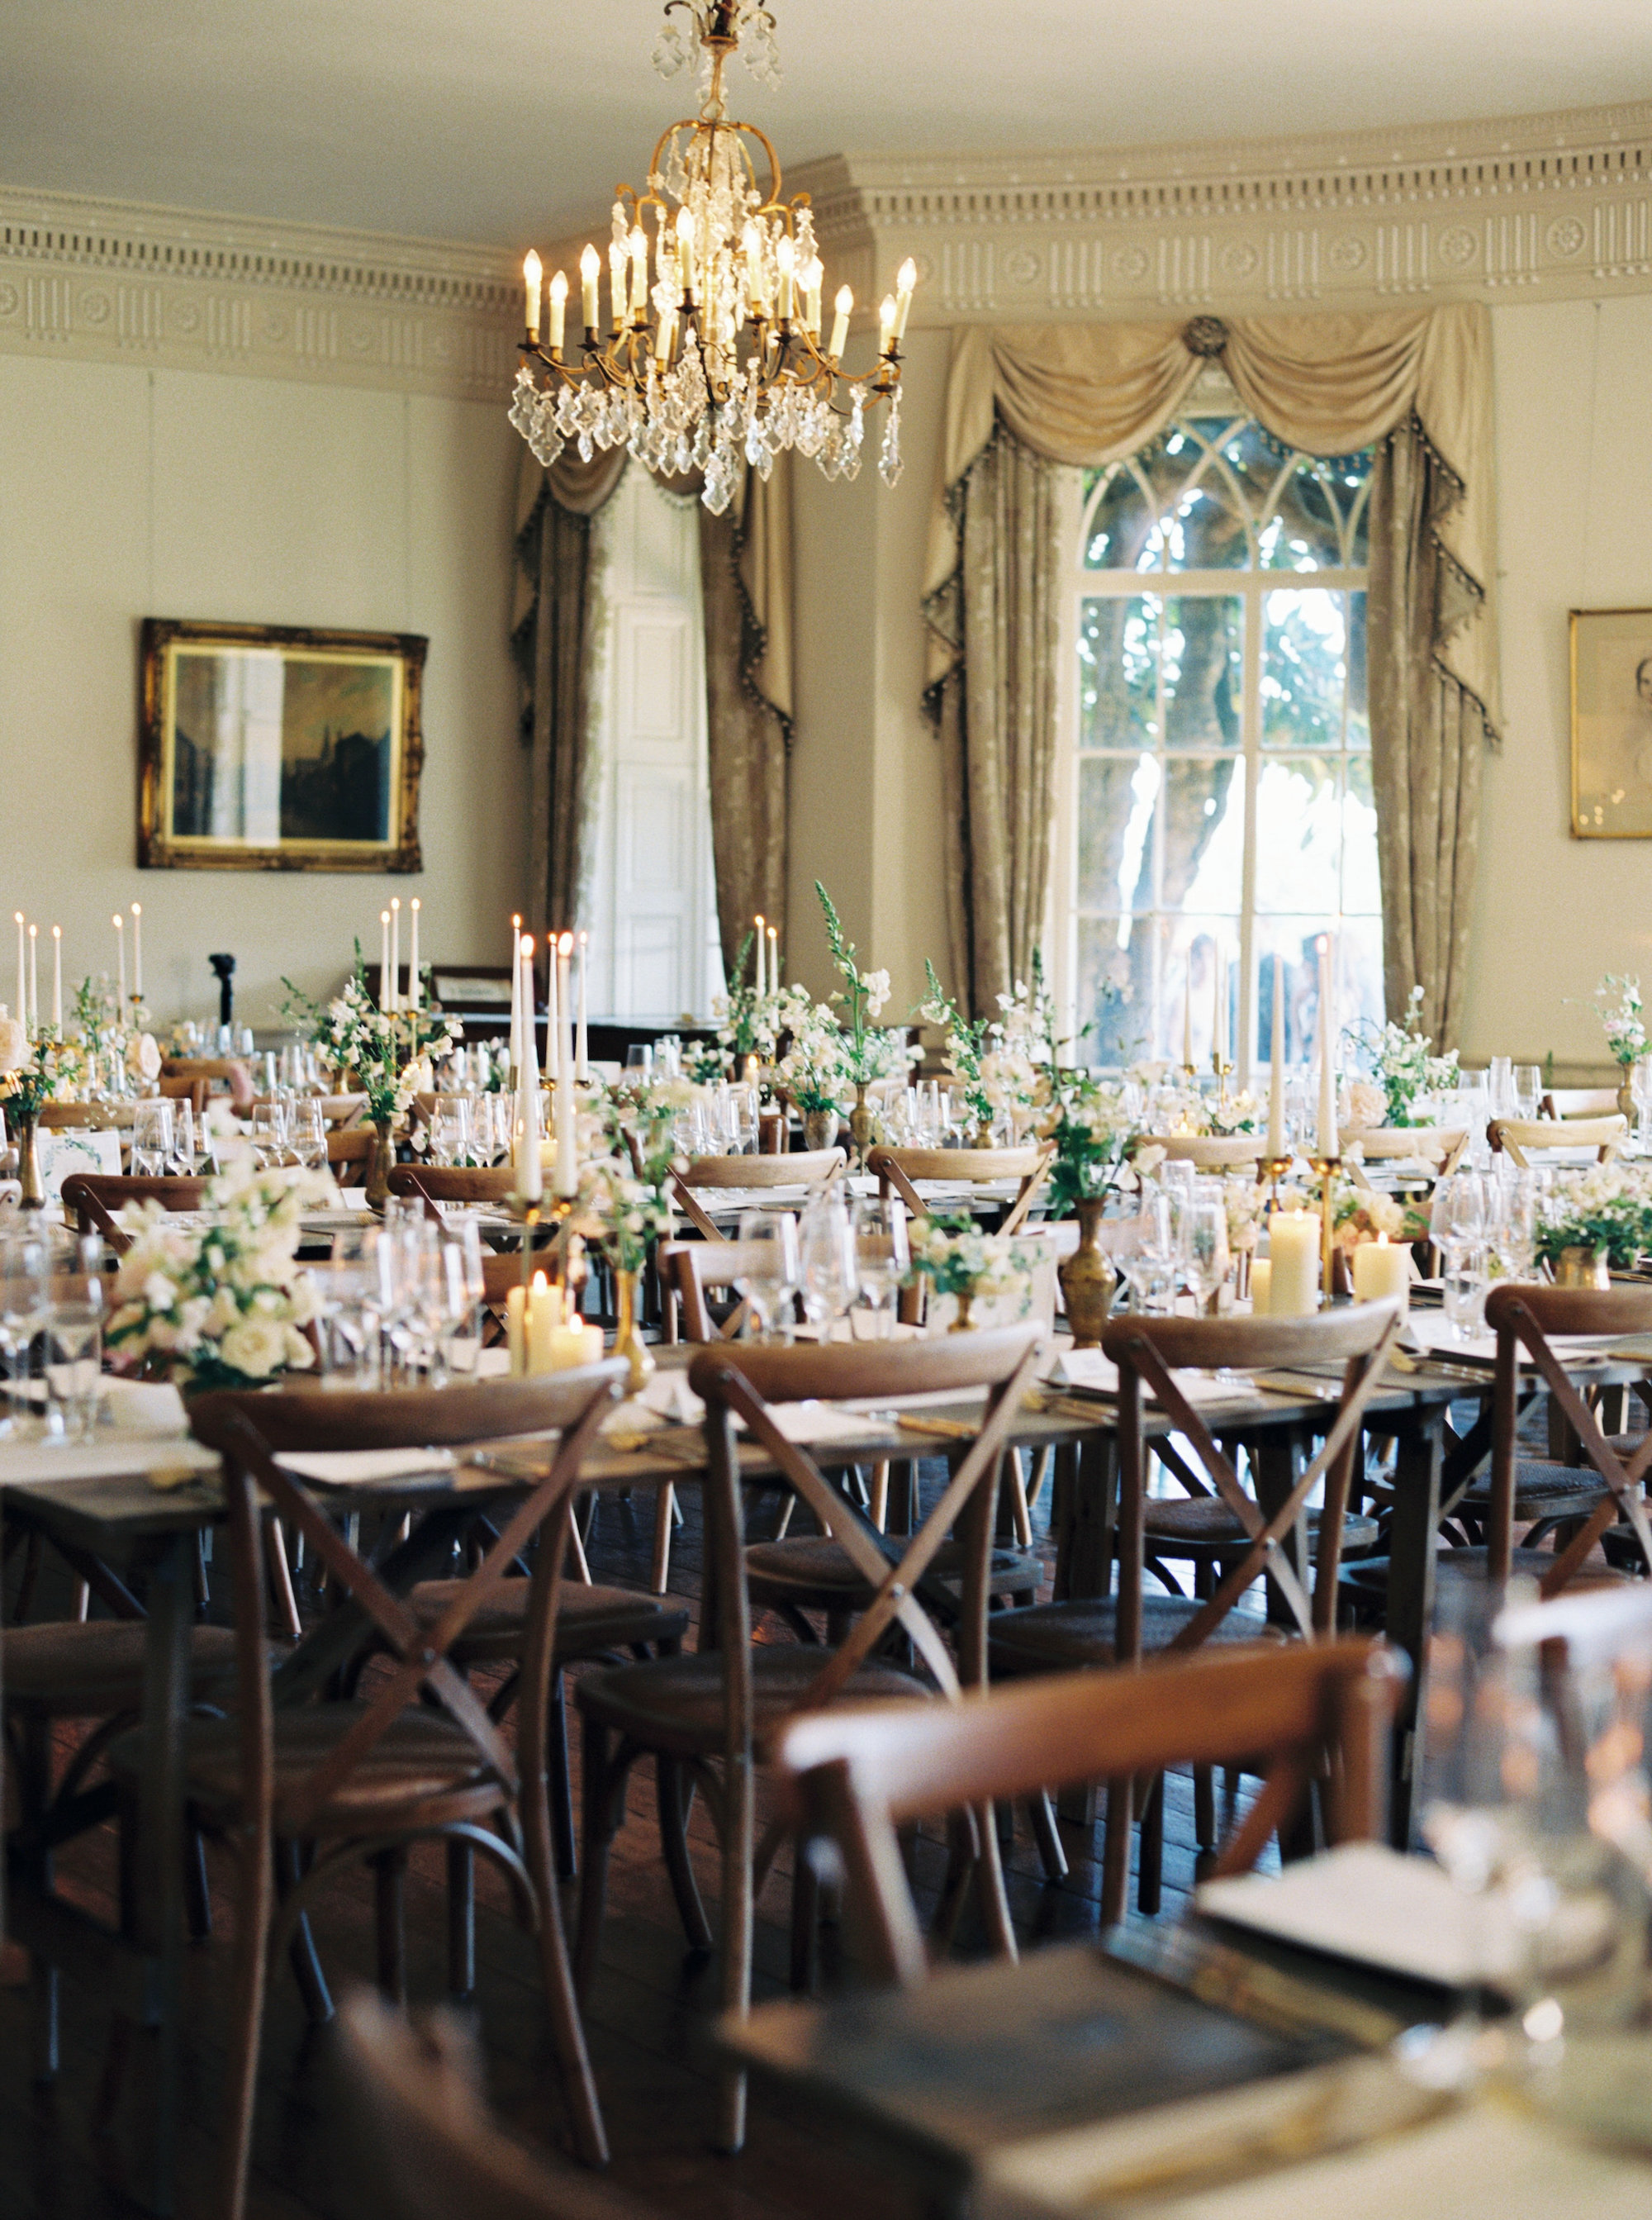 Luxury Wedding Planner UK | Jennifer & Timothy's English Country Manor Wedding | Soft Pink Pale Blue White and Silver Toned Green Neutral Tones American Bride North Cadbury Court | Nicole Colwell Photography 1215.jpg